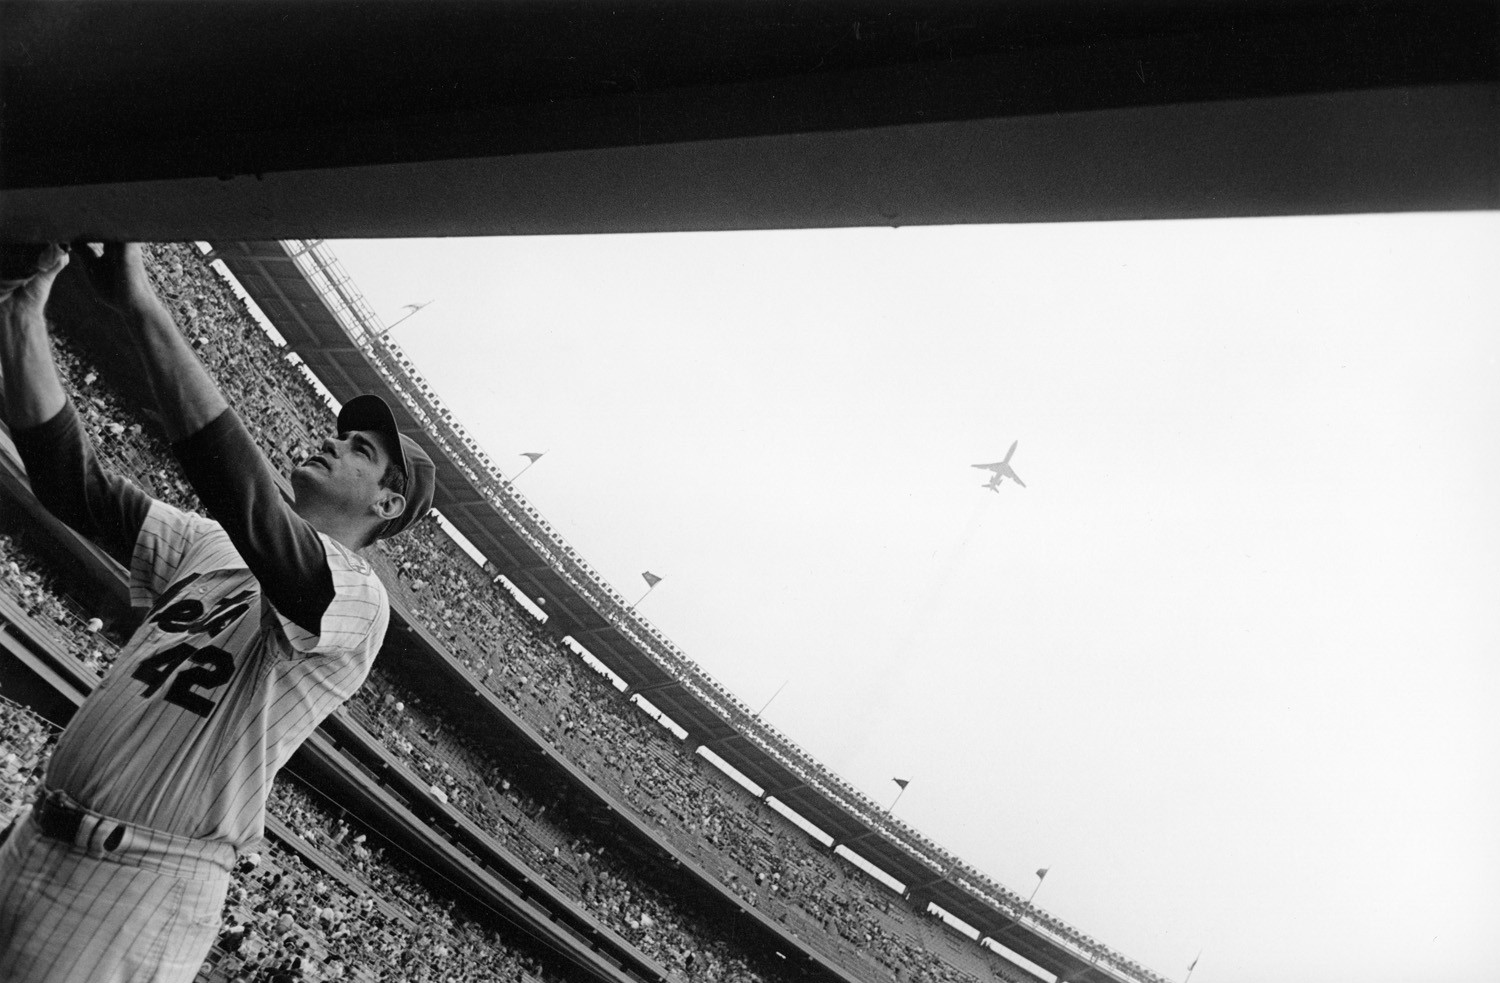 Tod Papageorge, Shea Stadium, New York, 1970